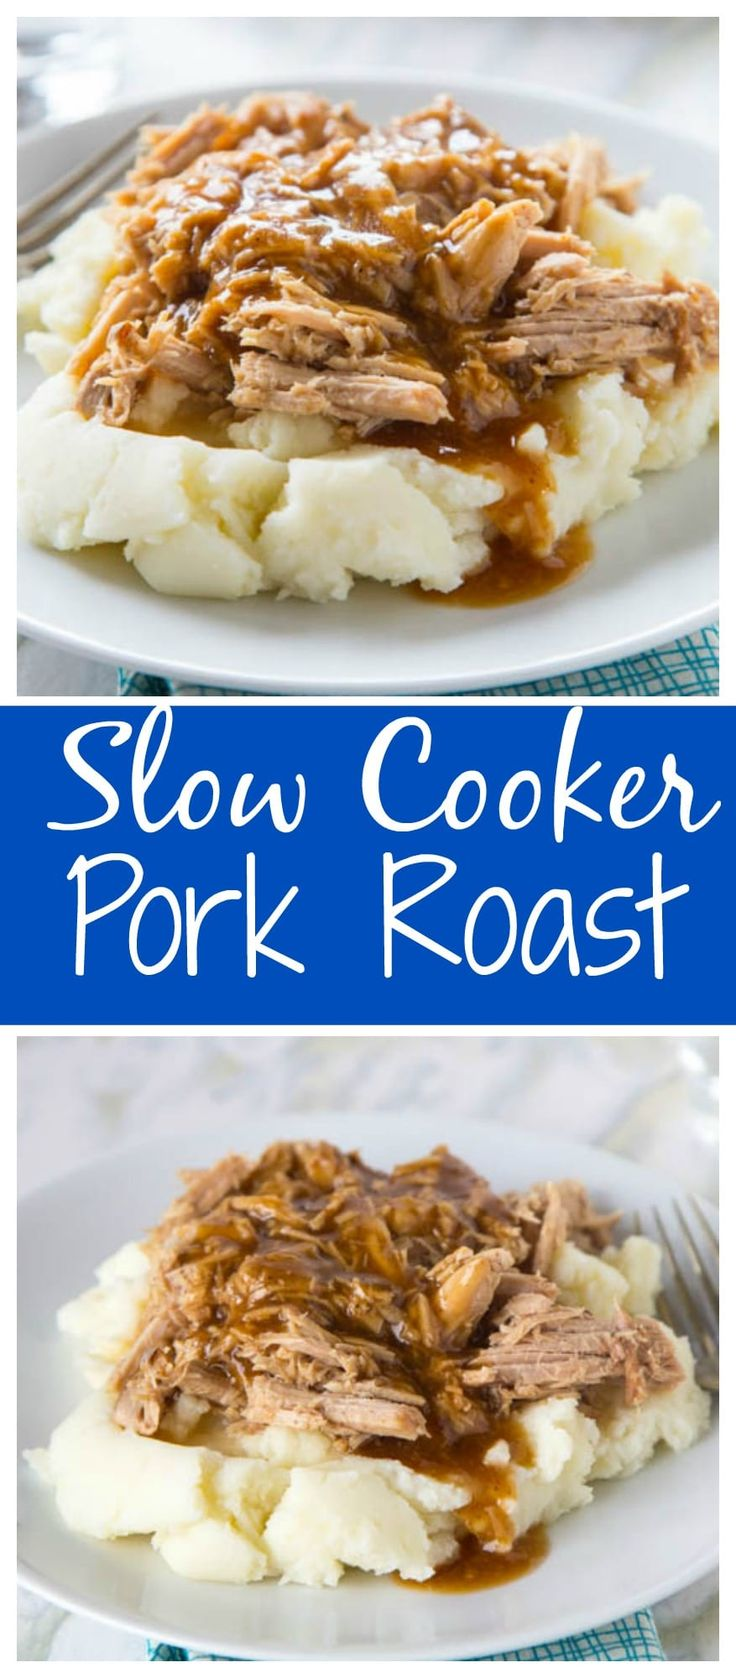 Slow Cooker Pork Roast - crock pot season is here, and it is time for pure comfort food!  Super easy pork roast for any night of the week.